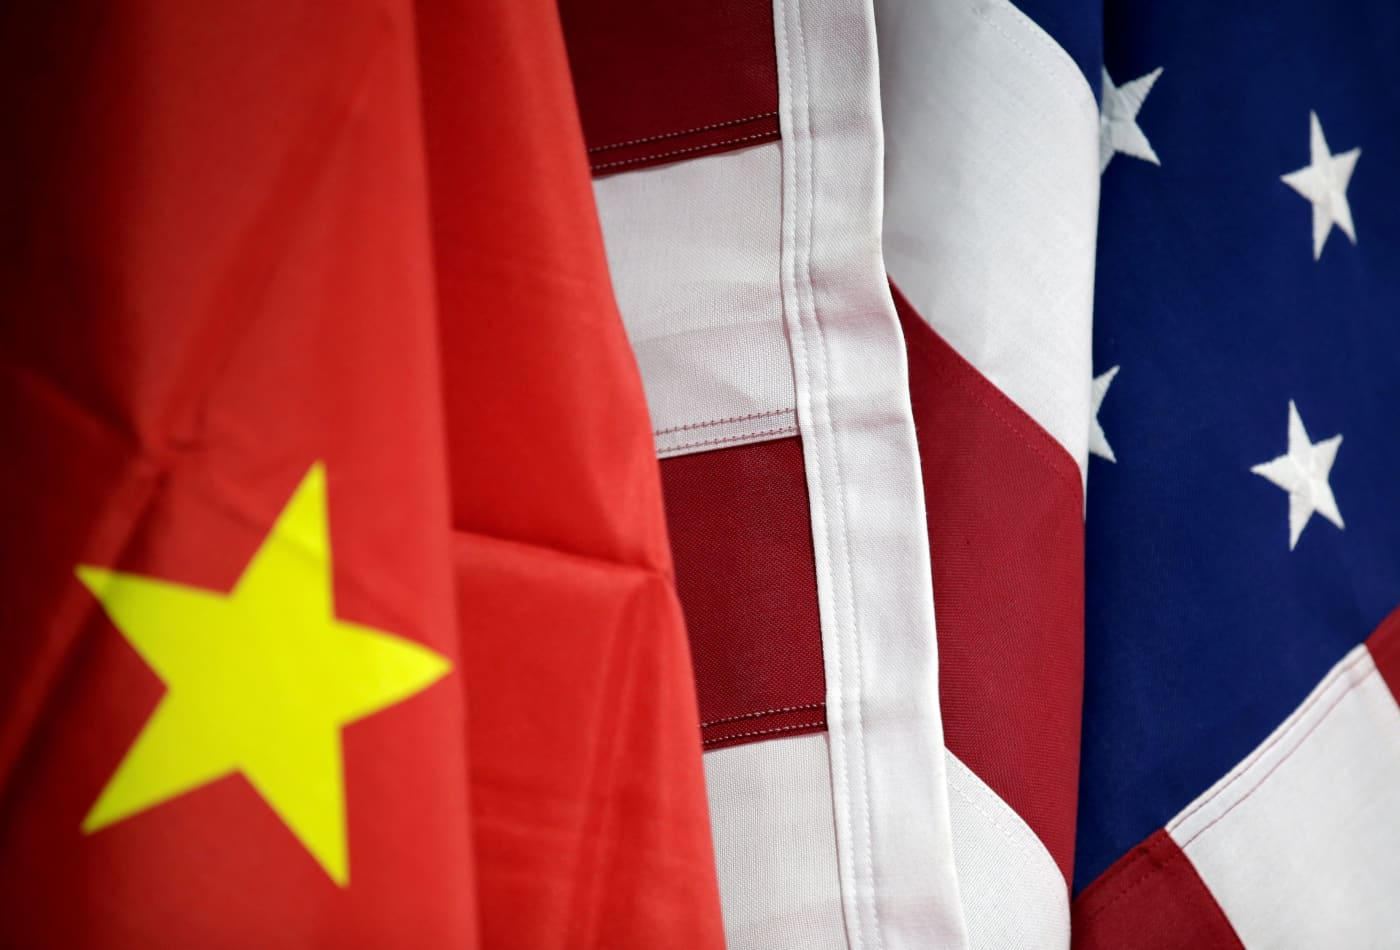 A U.S. strategy paper on China draws a tepid response in Beijing